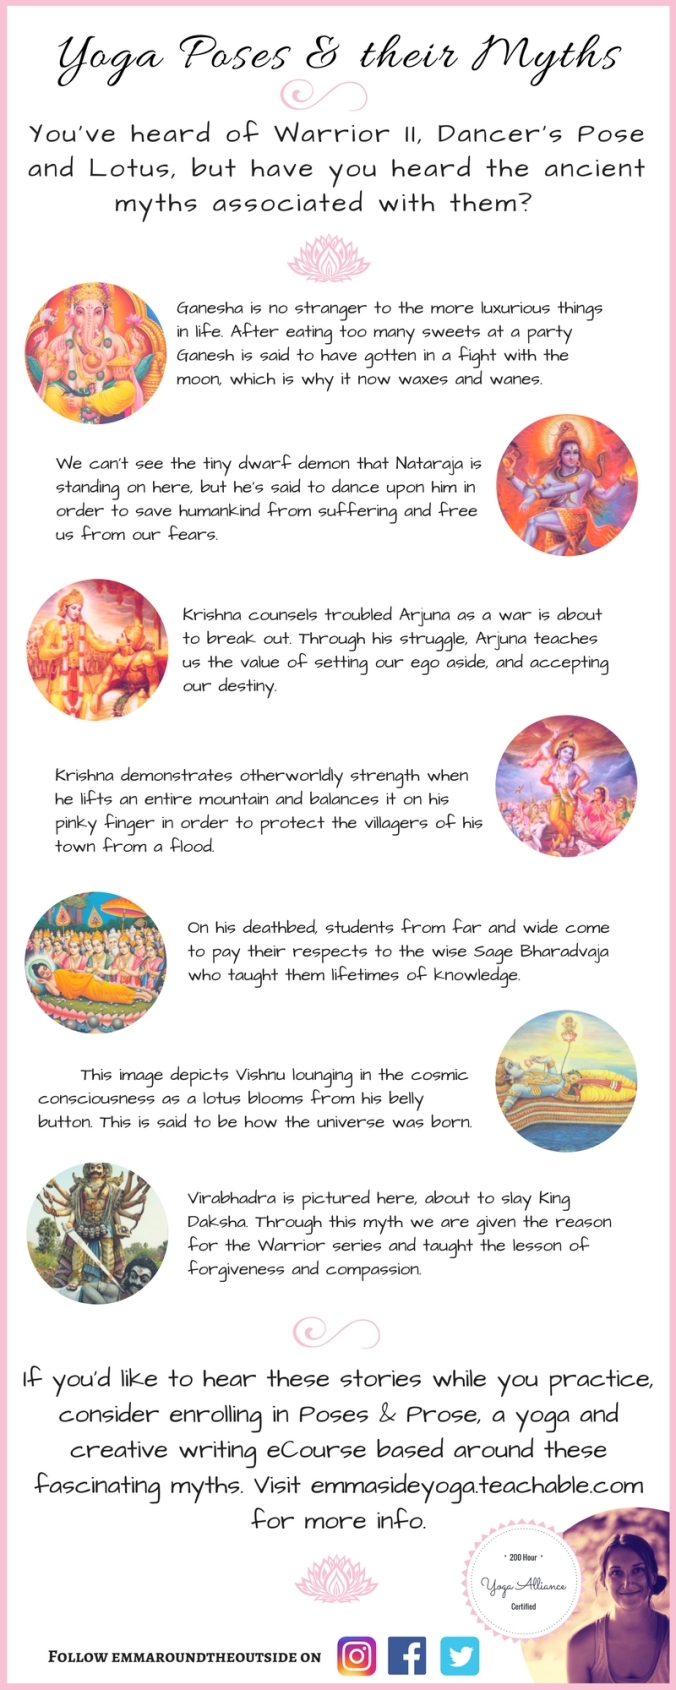 yoga, myths, infographic, India, ancient, stories